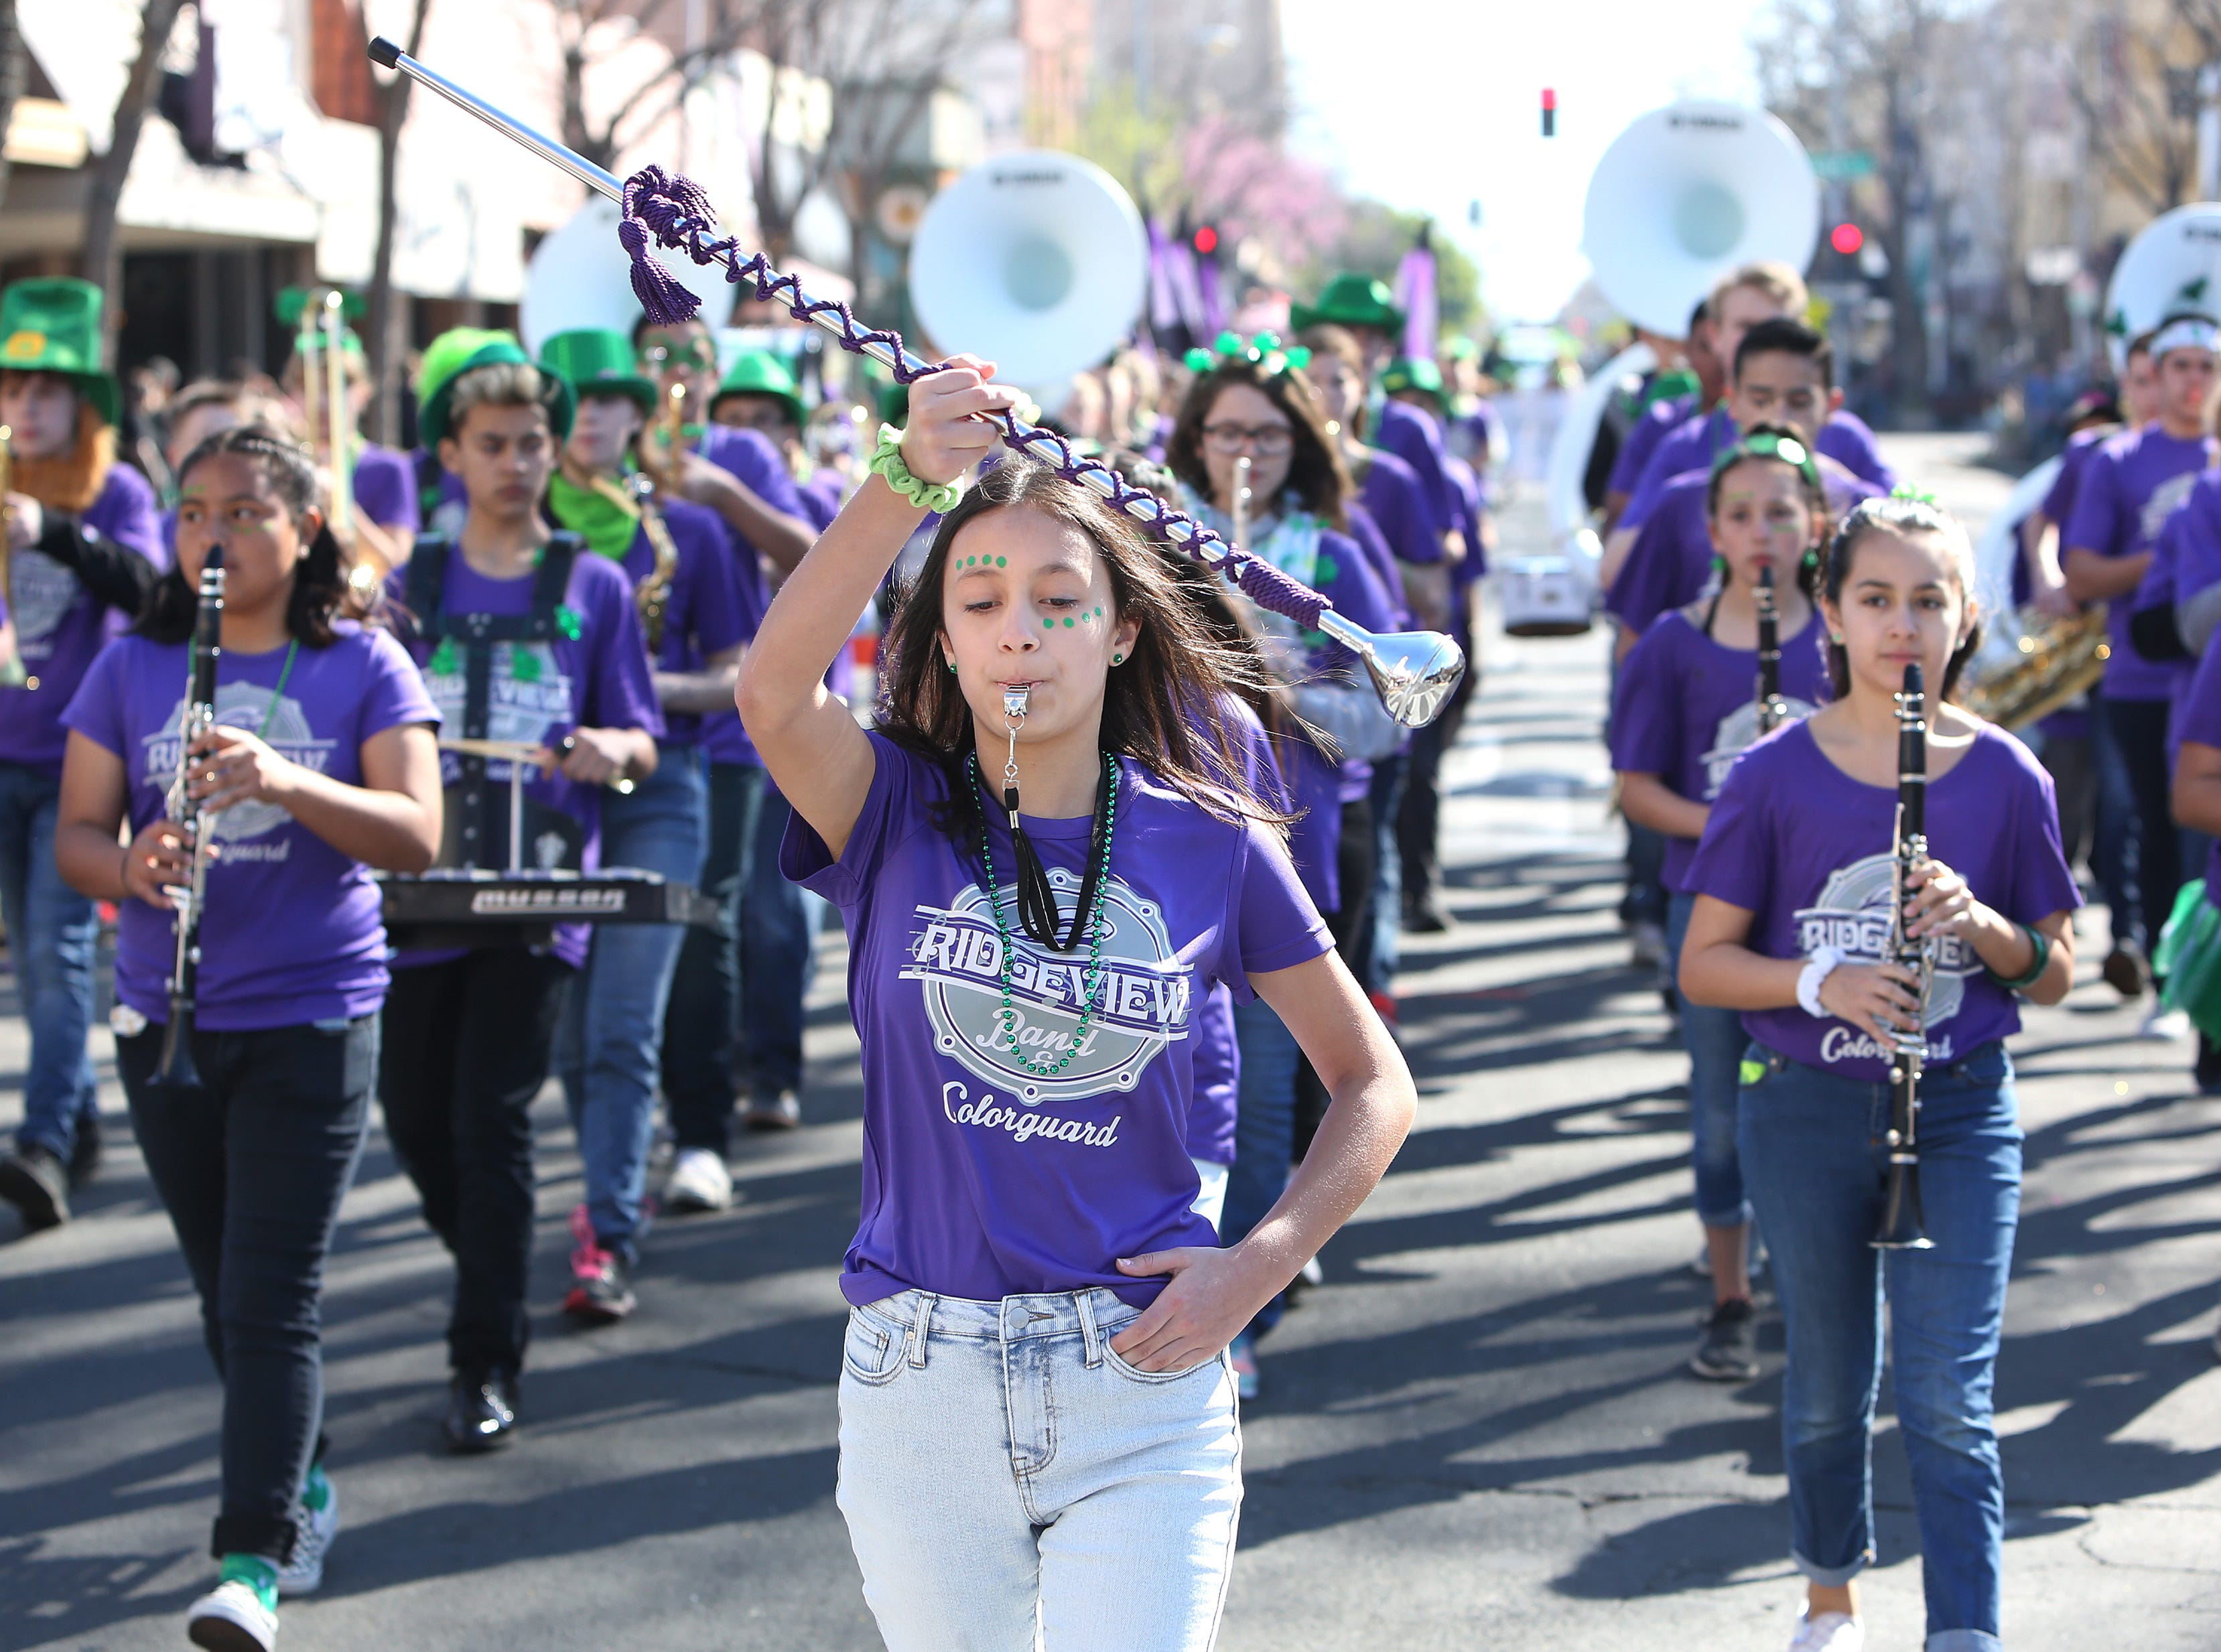 at this year's St. Patrick's Day parade rolling through Main Street Saturday, March 16, 2019 in Visalia, Calif.